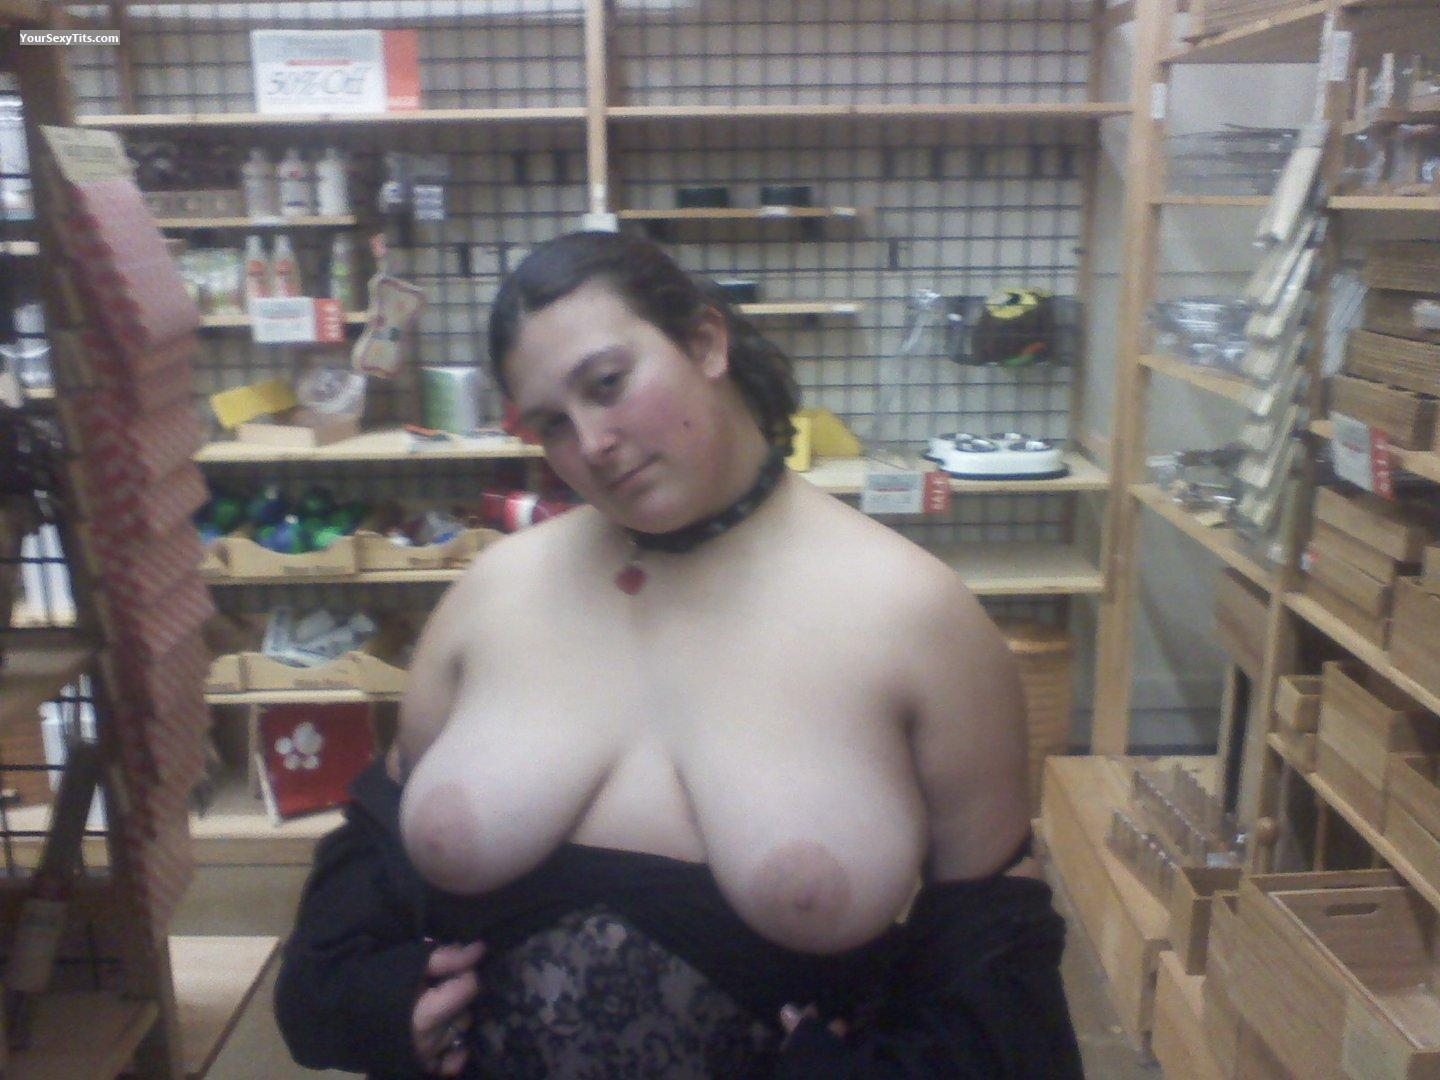 Tit Flash: Very Big Tits - Topless Kitty from United States